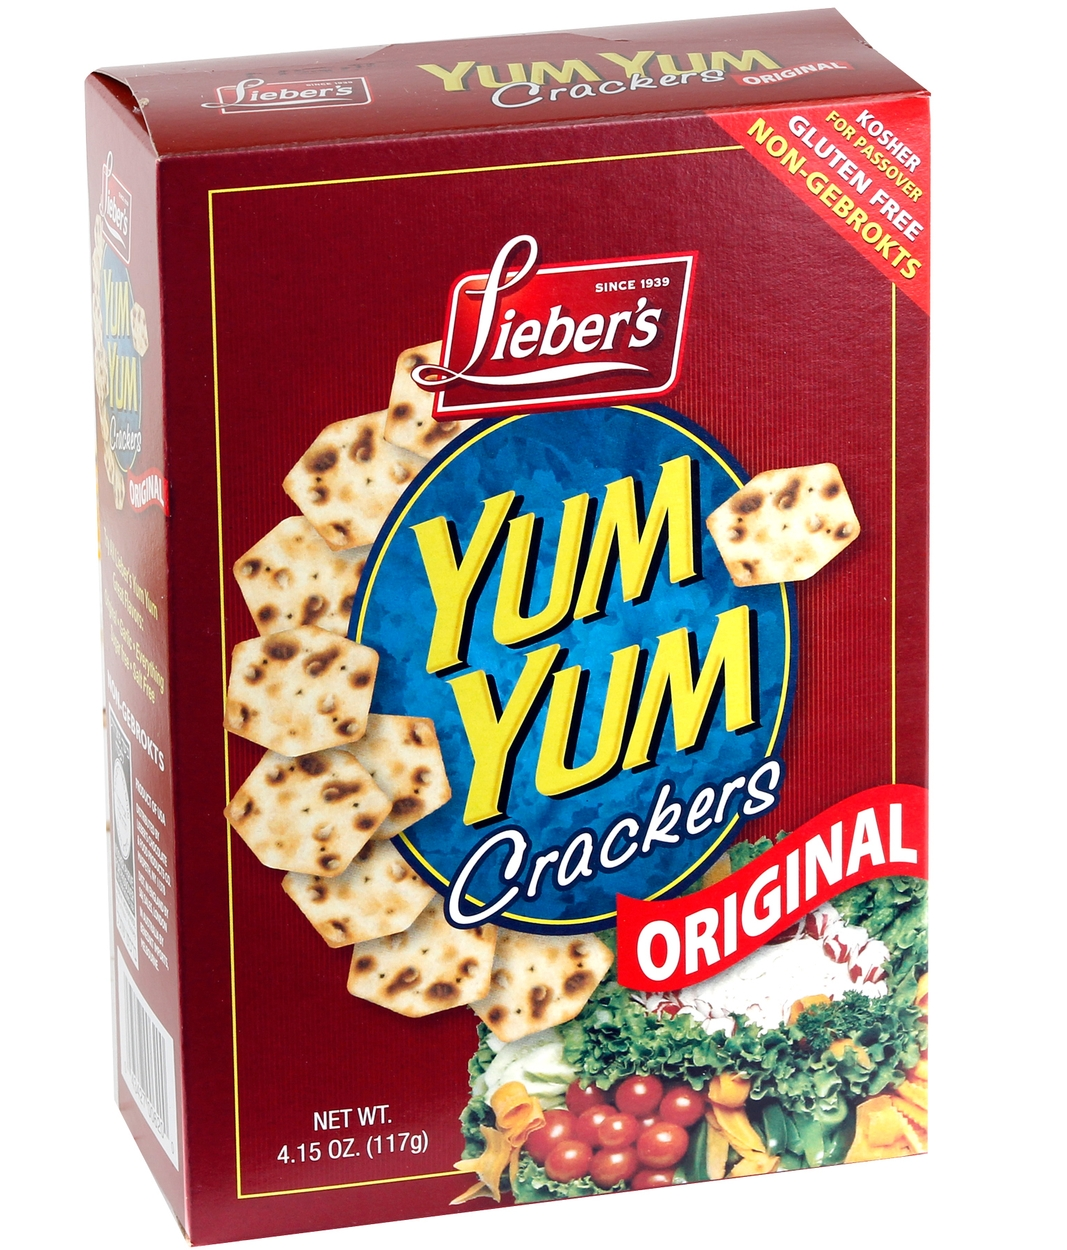 Passover yum yum gluten free crackers 41 oz box passover cereal passover yum yum gluten free crackers 41 oz box passover cereal snacks crackers passover gift baskets candy chocolate nuts oh nuts negle Choice Image